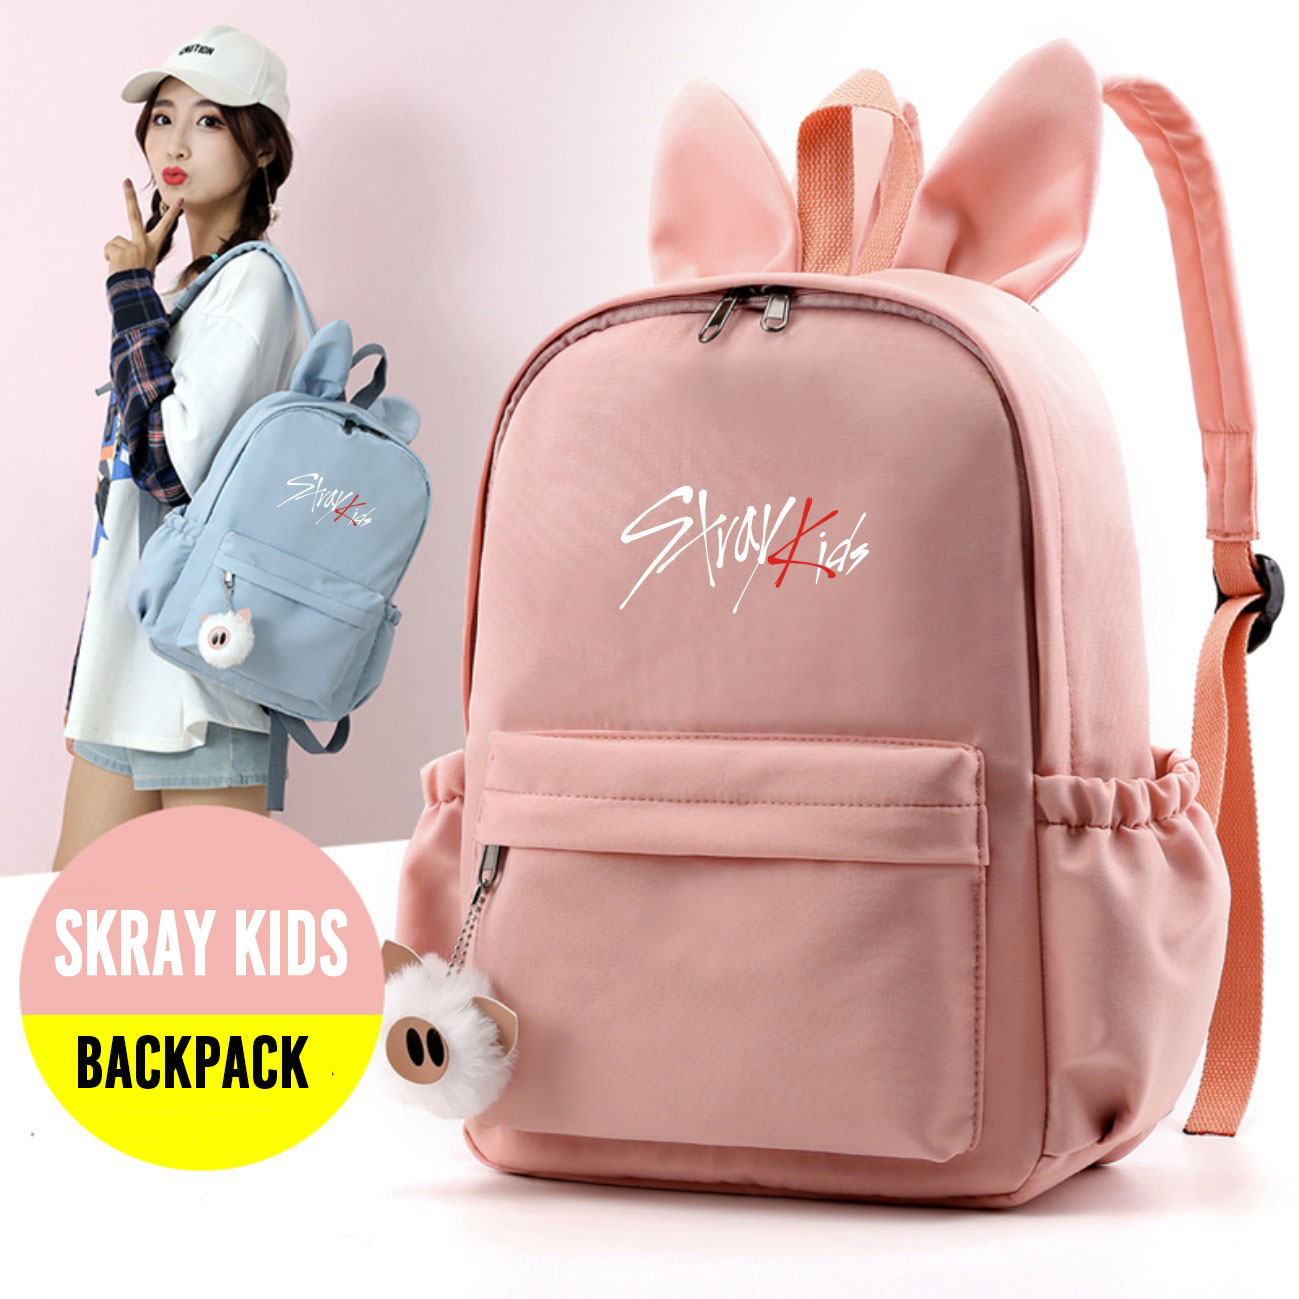 Kpop Stray Kids Backpack Cute Rabbit Ears Schoolbag Back To School Bag Kpop Stray Kids Stationery Set Supplies New Arrivals